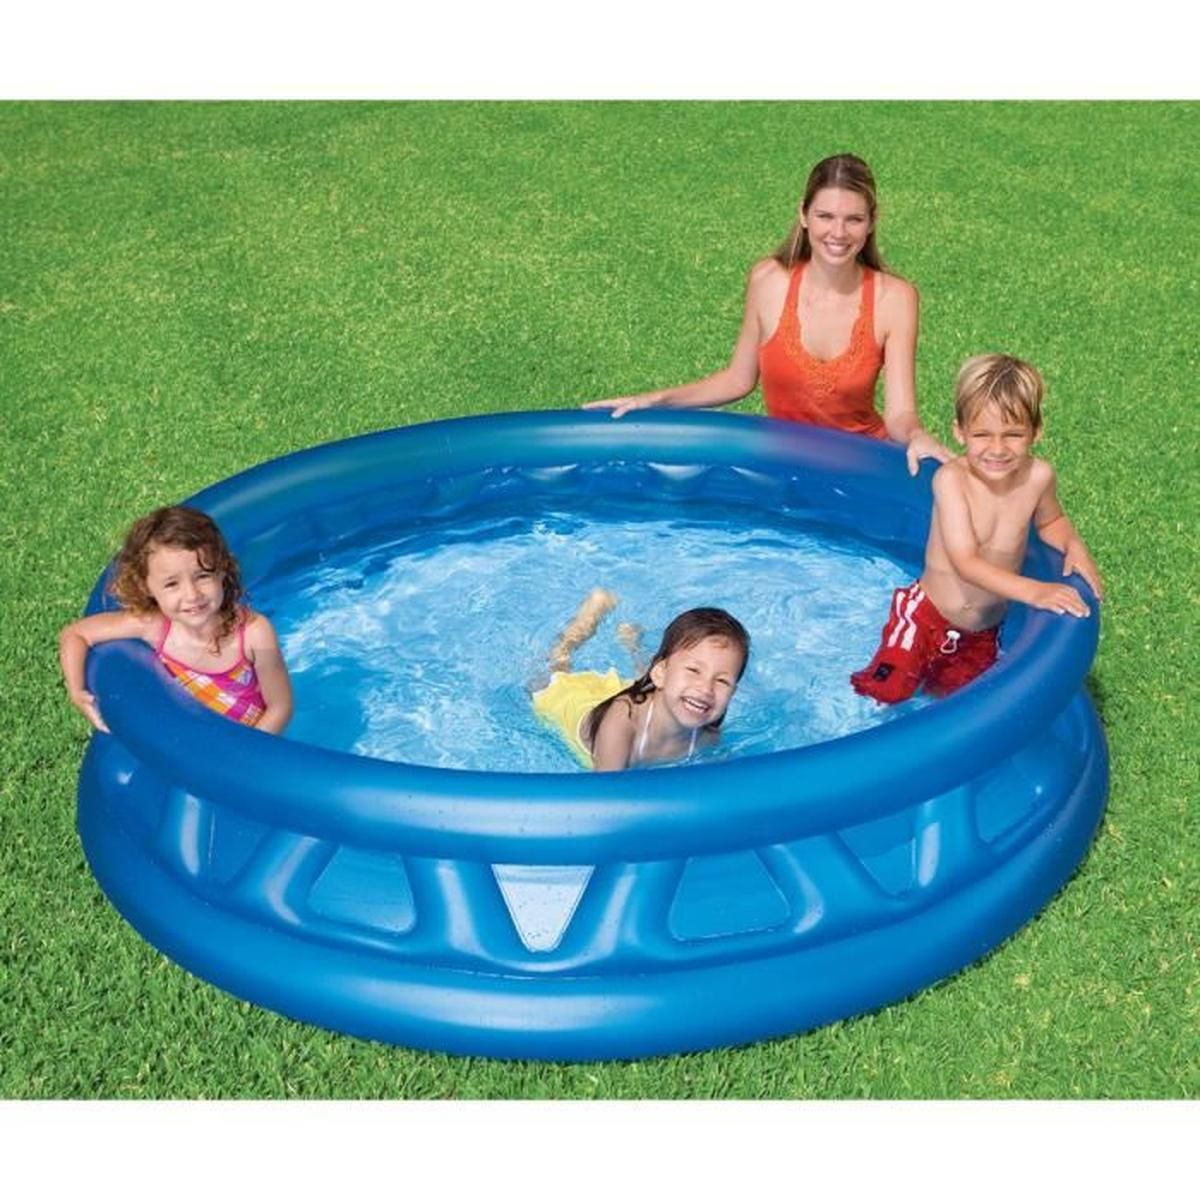 "Piscine Enfant ""soft Side Pool"" Bleu - Achat / Vente ... destiné Piscine Intex Enfant"